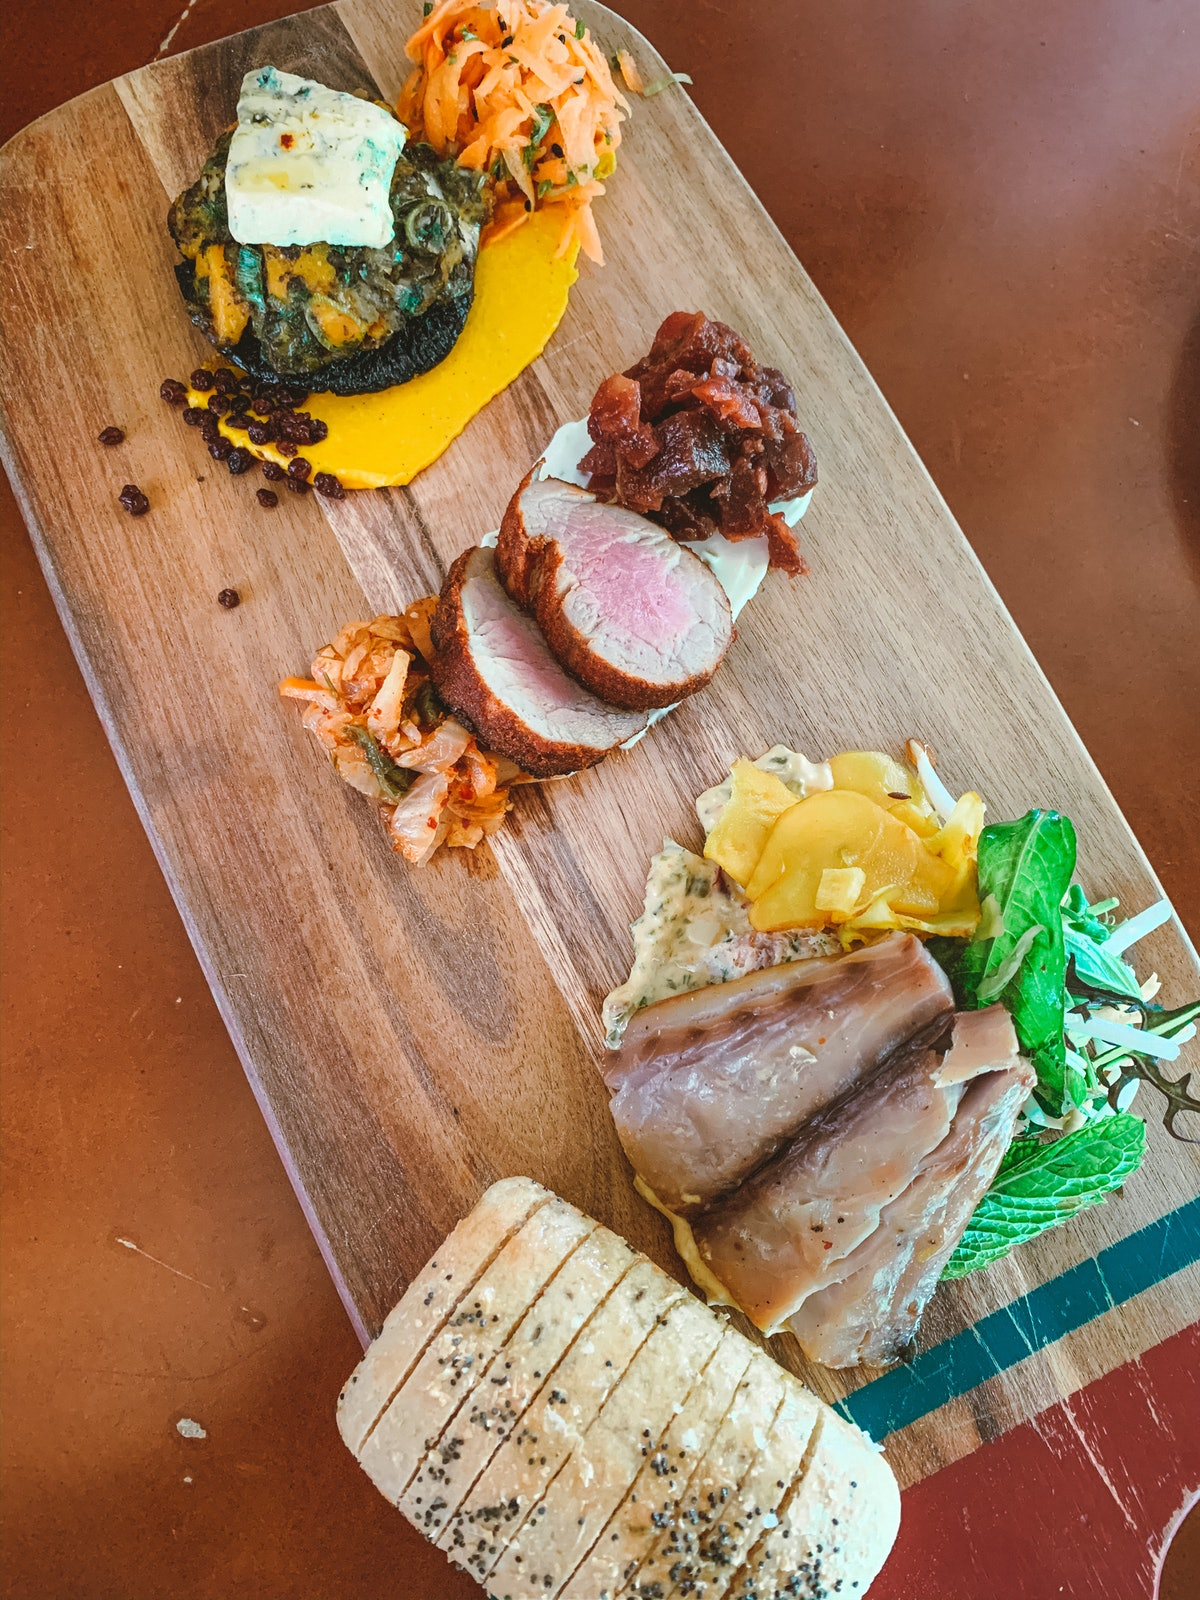 A wooden platter of food sits on the table.